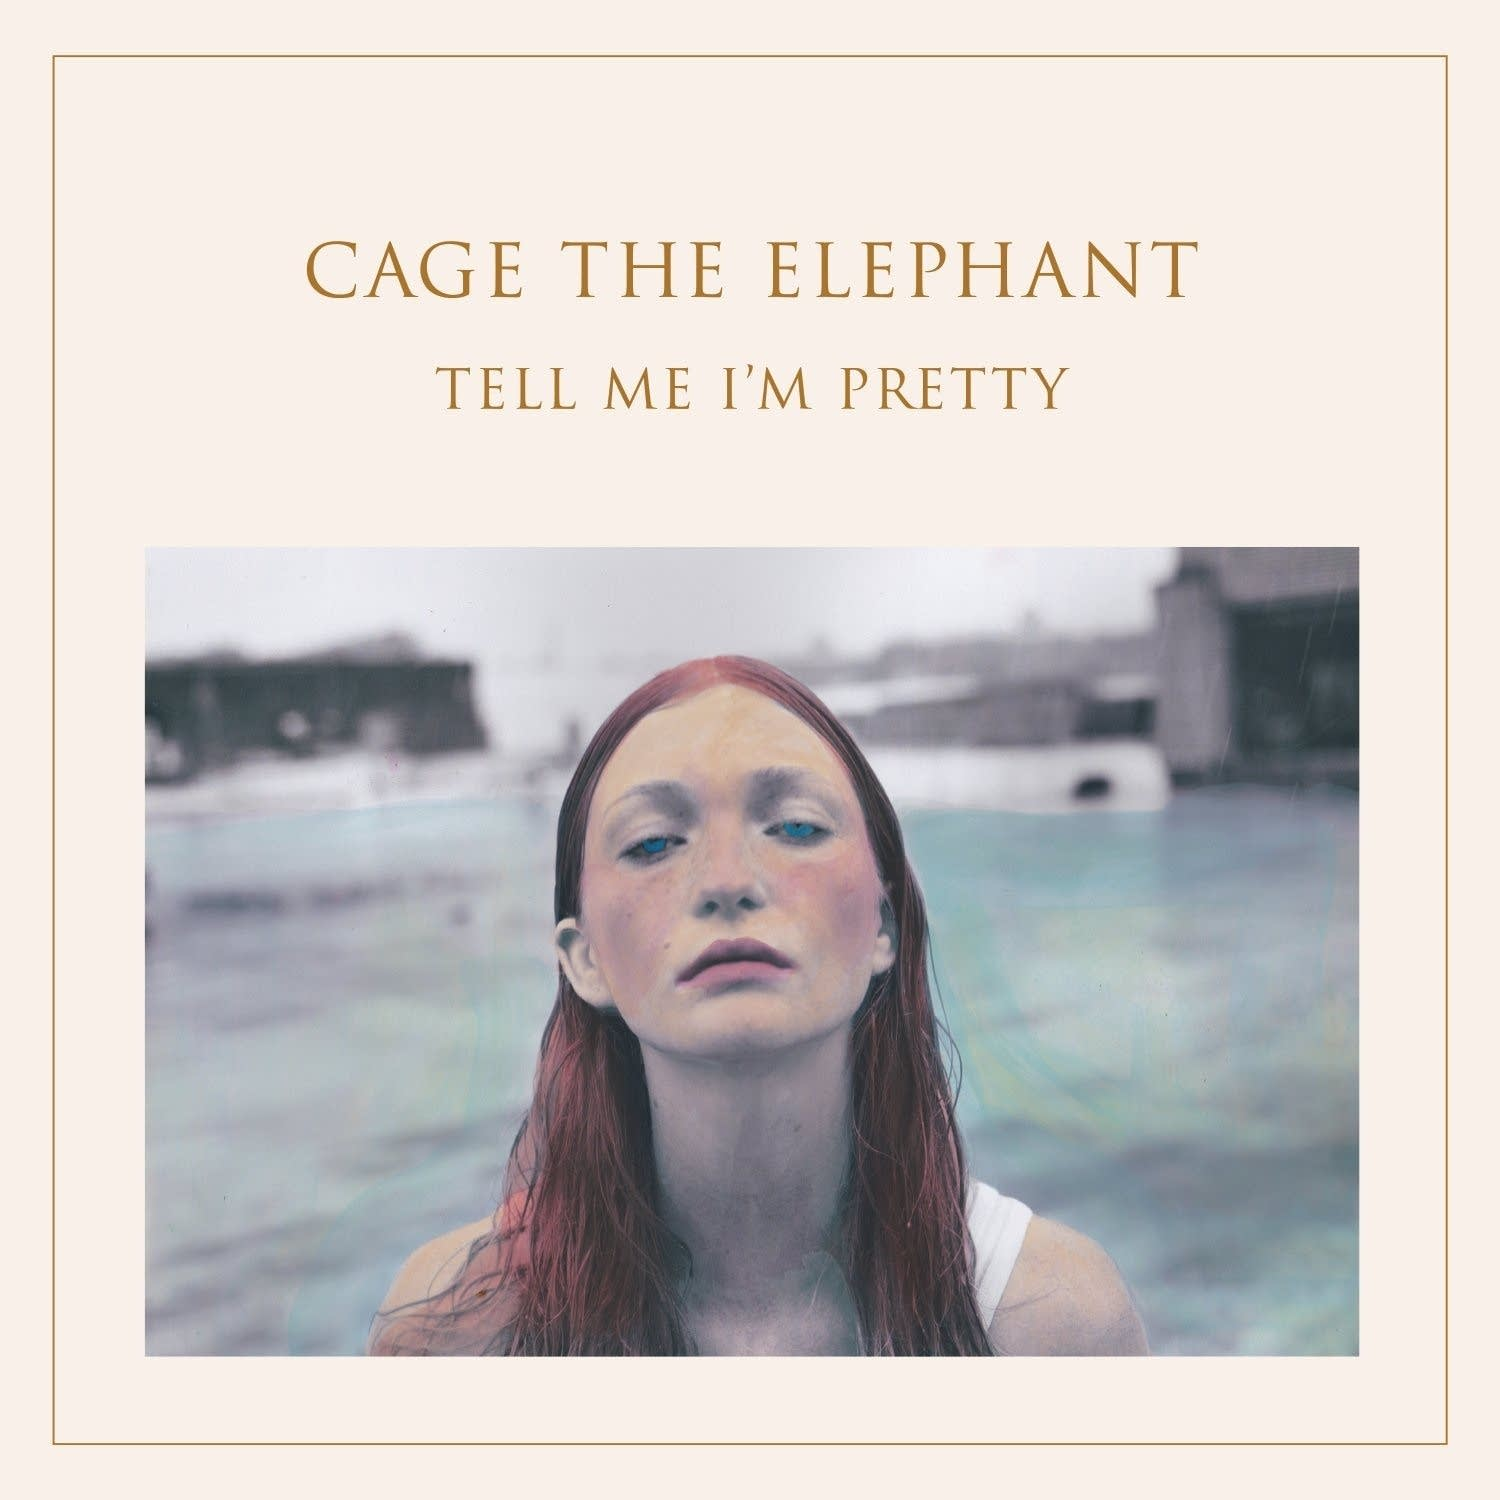 Cage the Elephant, 'Tell Me I'm Pretty'